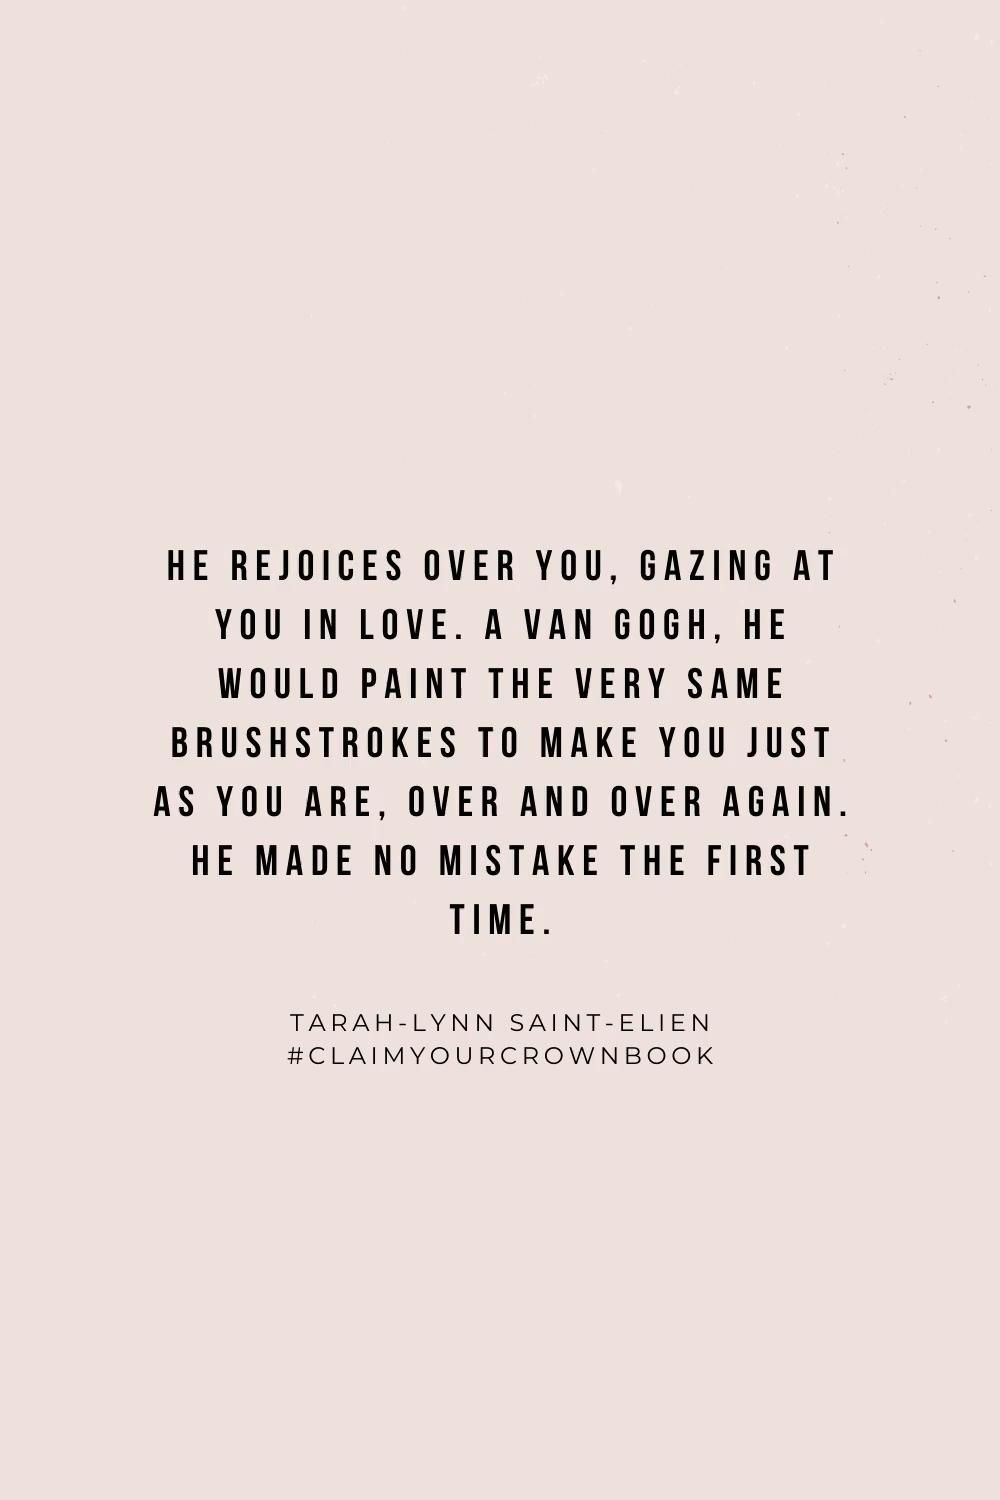 Jesus made no mistake with you